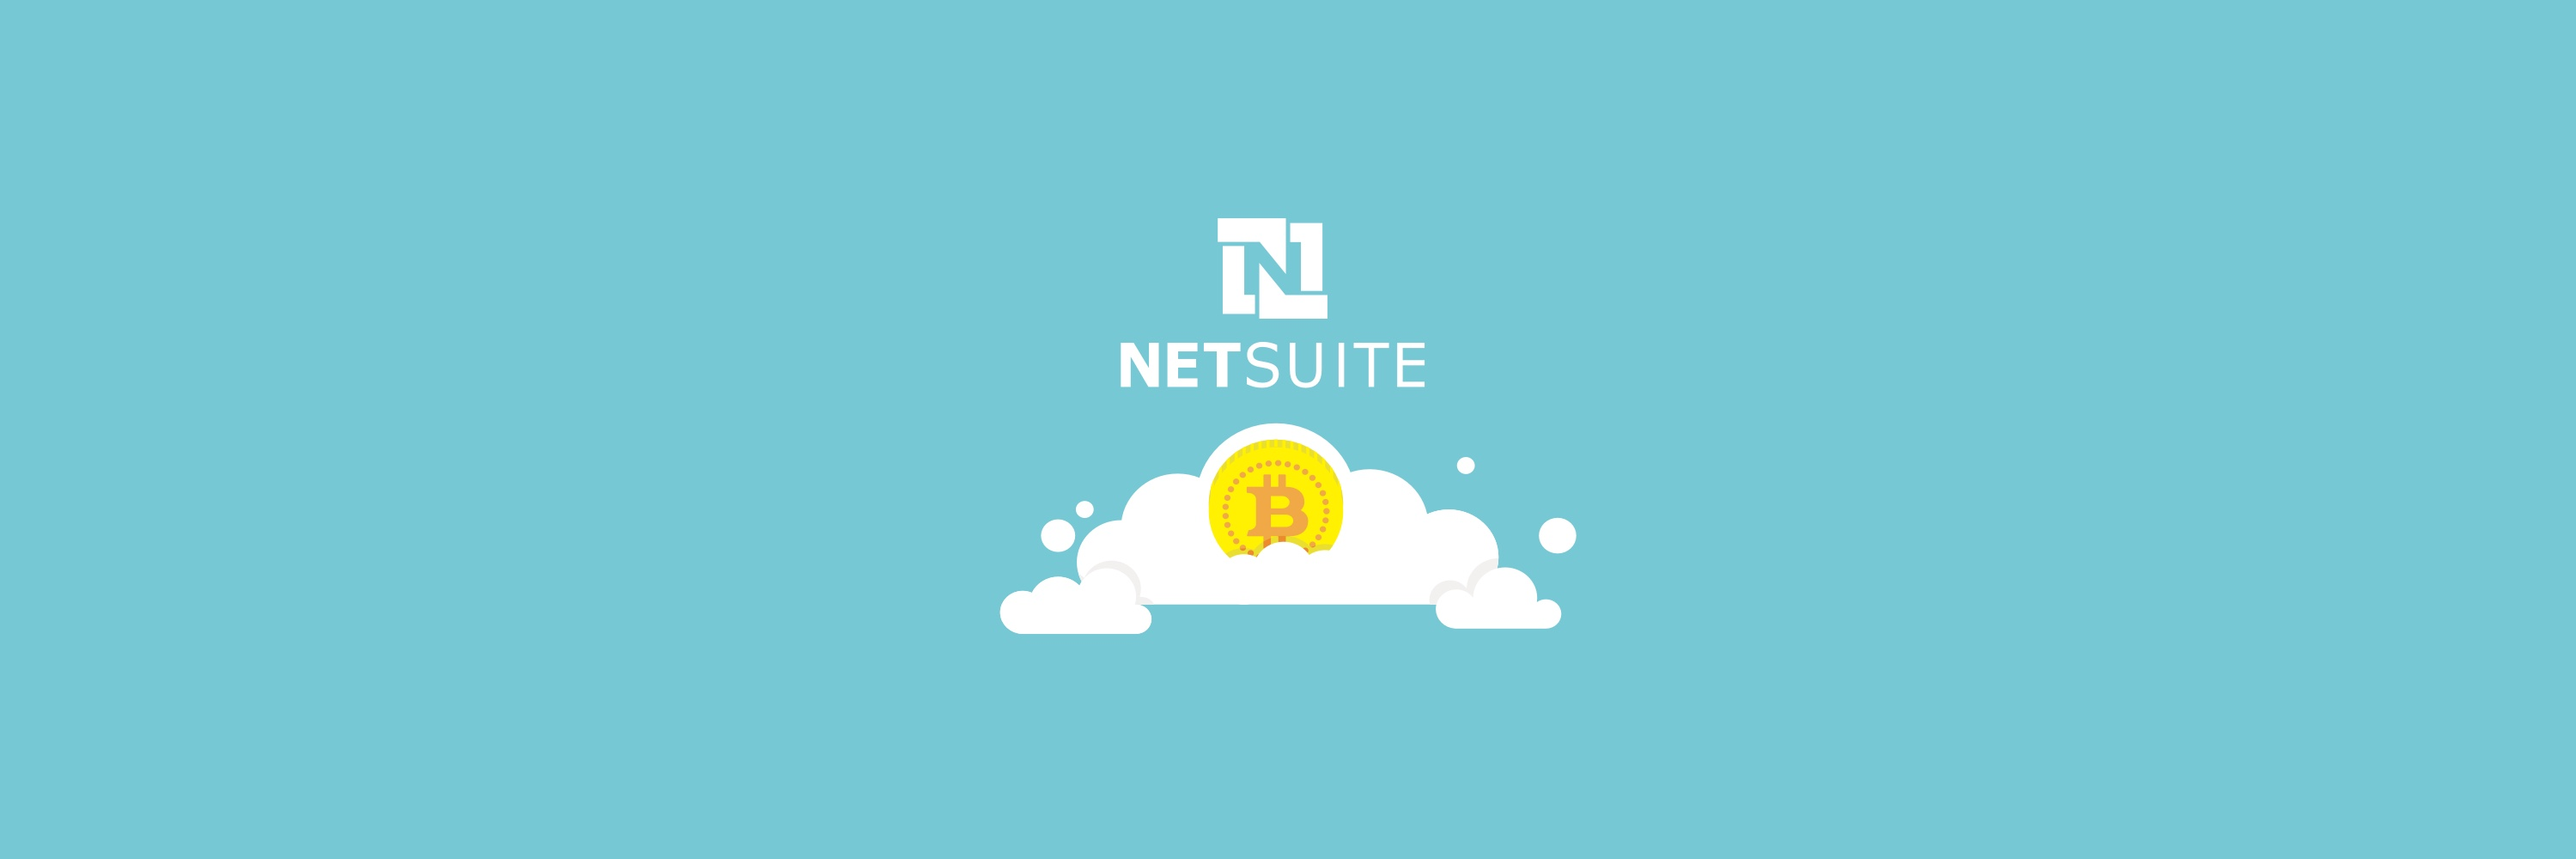 A Bitcoin Solution for NetSuite